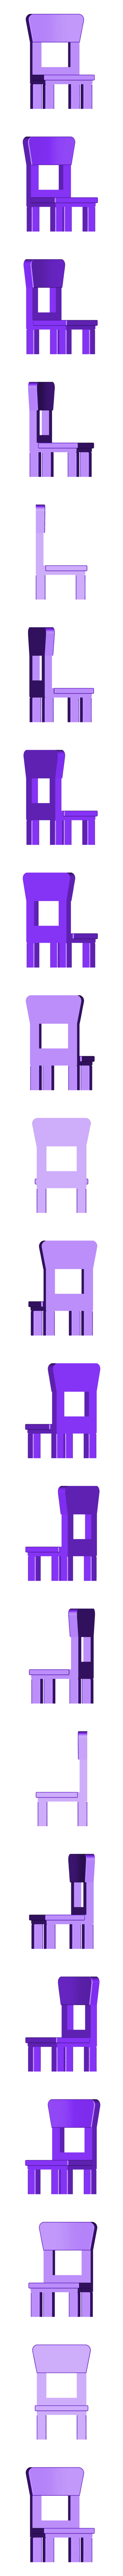 Toy_Chair.stl Download free STL file Toy Desk and Chair • 3D printing object, VillainousPropShop